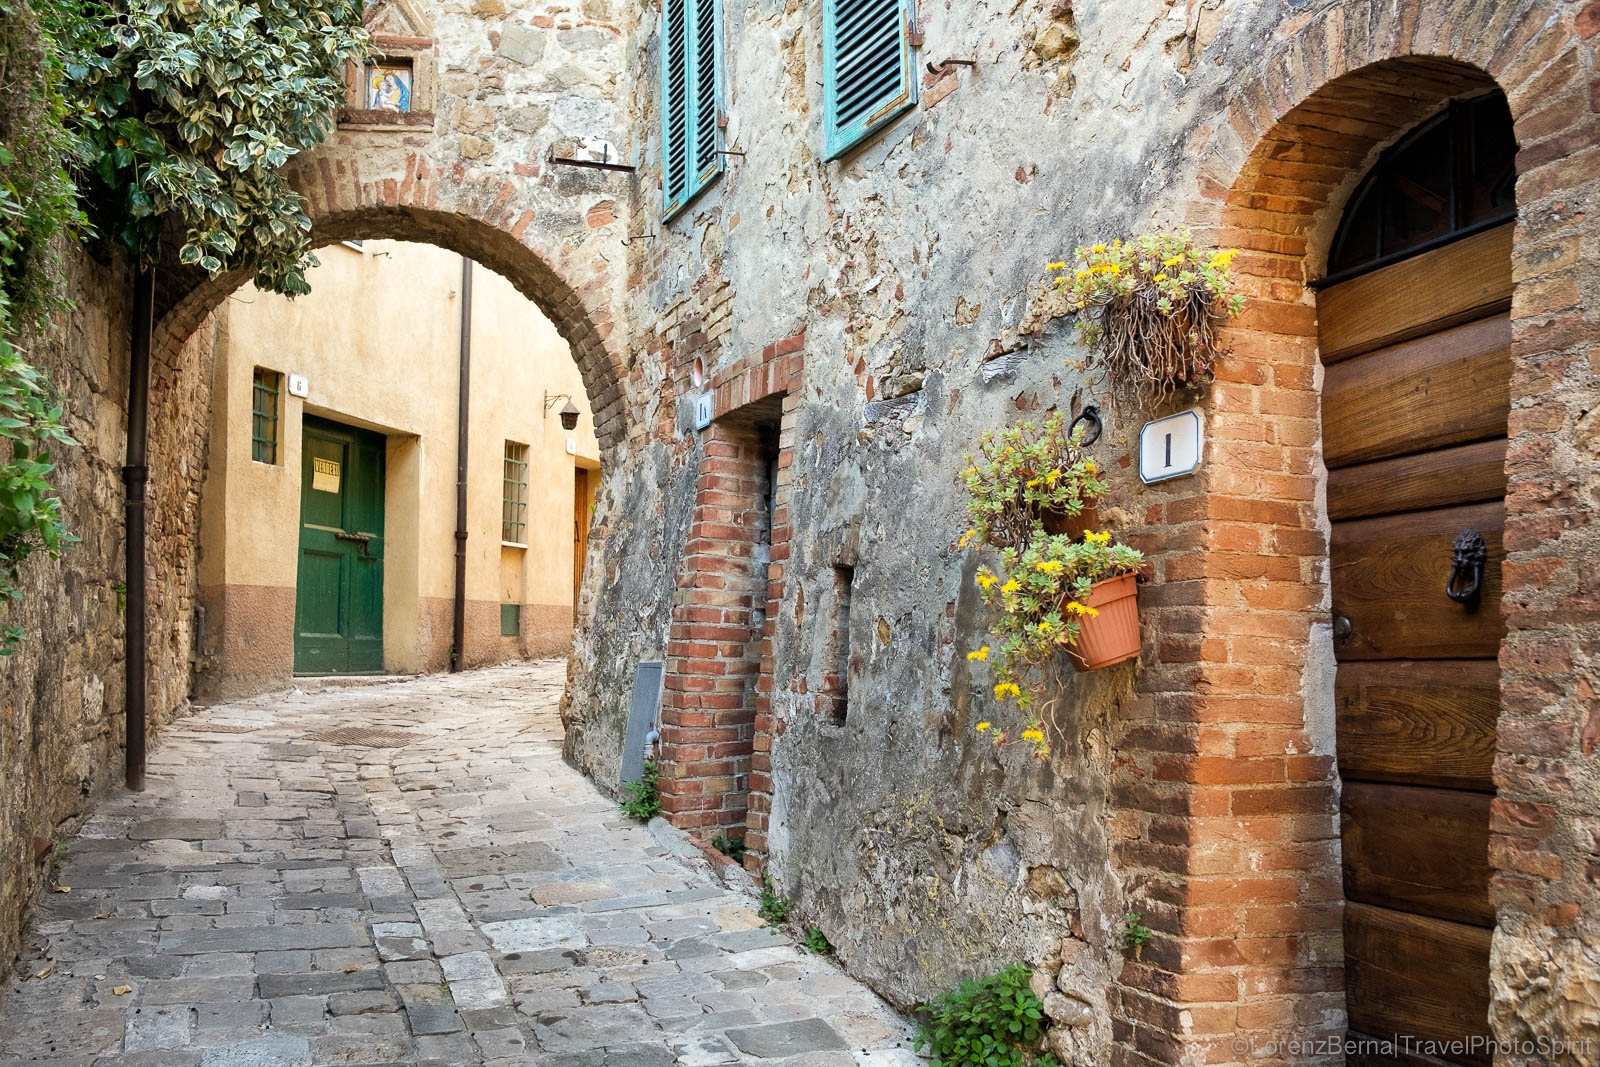 Old street in a classic Tuscany village, Italy.